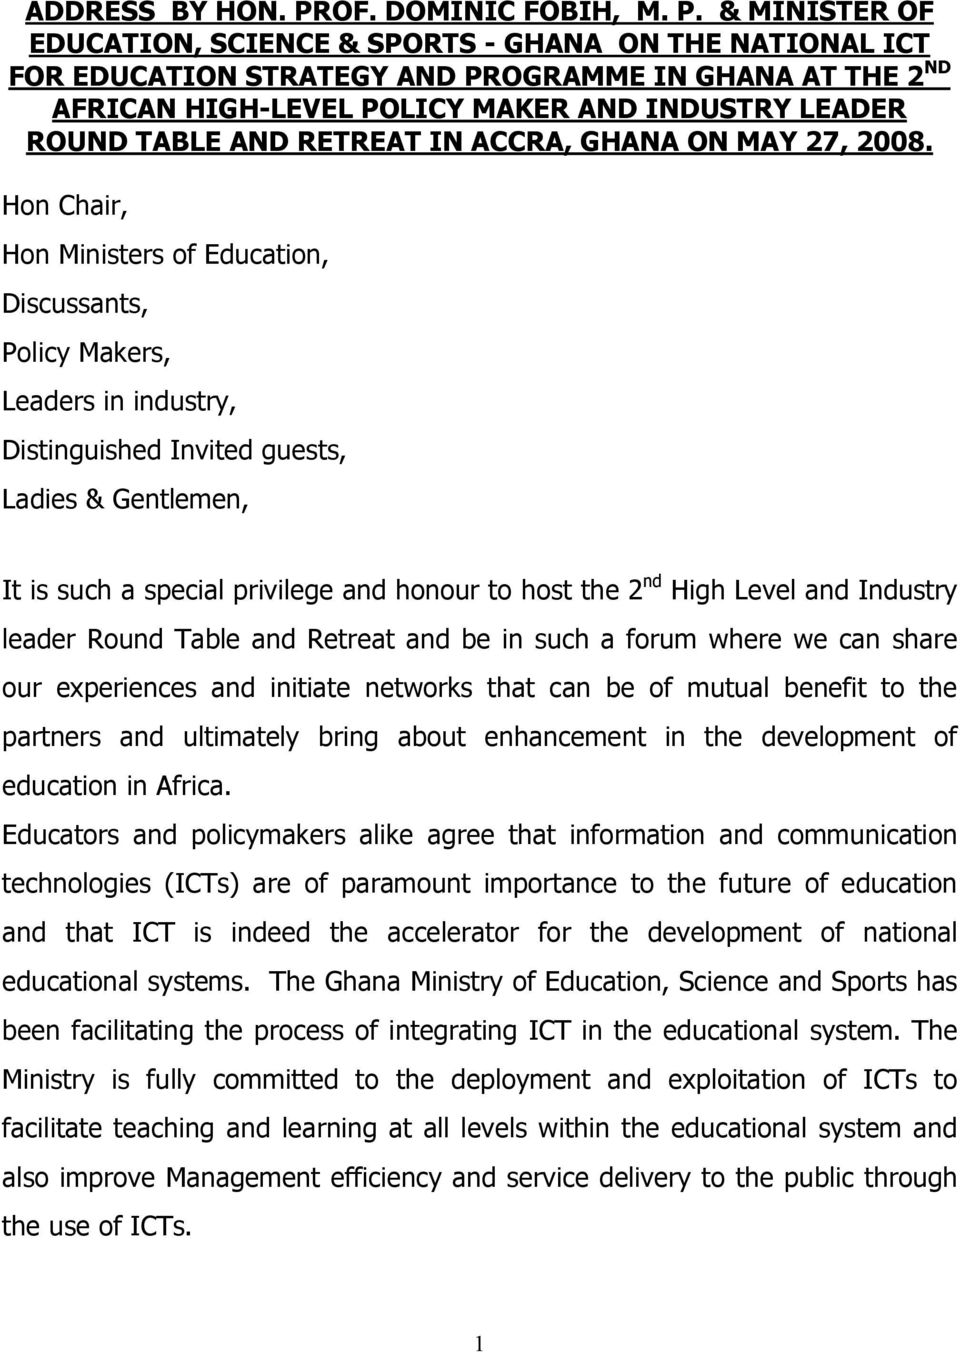 & MINISTER OF EDUCATION, SCIENCE & SPORTS - GHANA ON THE NATIONAL ICT FOR EDUCATION STRATEGY AND PROGRAMME IN GHANA AT THE 2 ND AFRICAN HIGH-LEVEL POLICY MAKER AND INDUSTRY LEADER ROUND TABLE AND